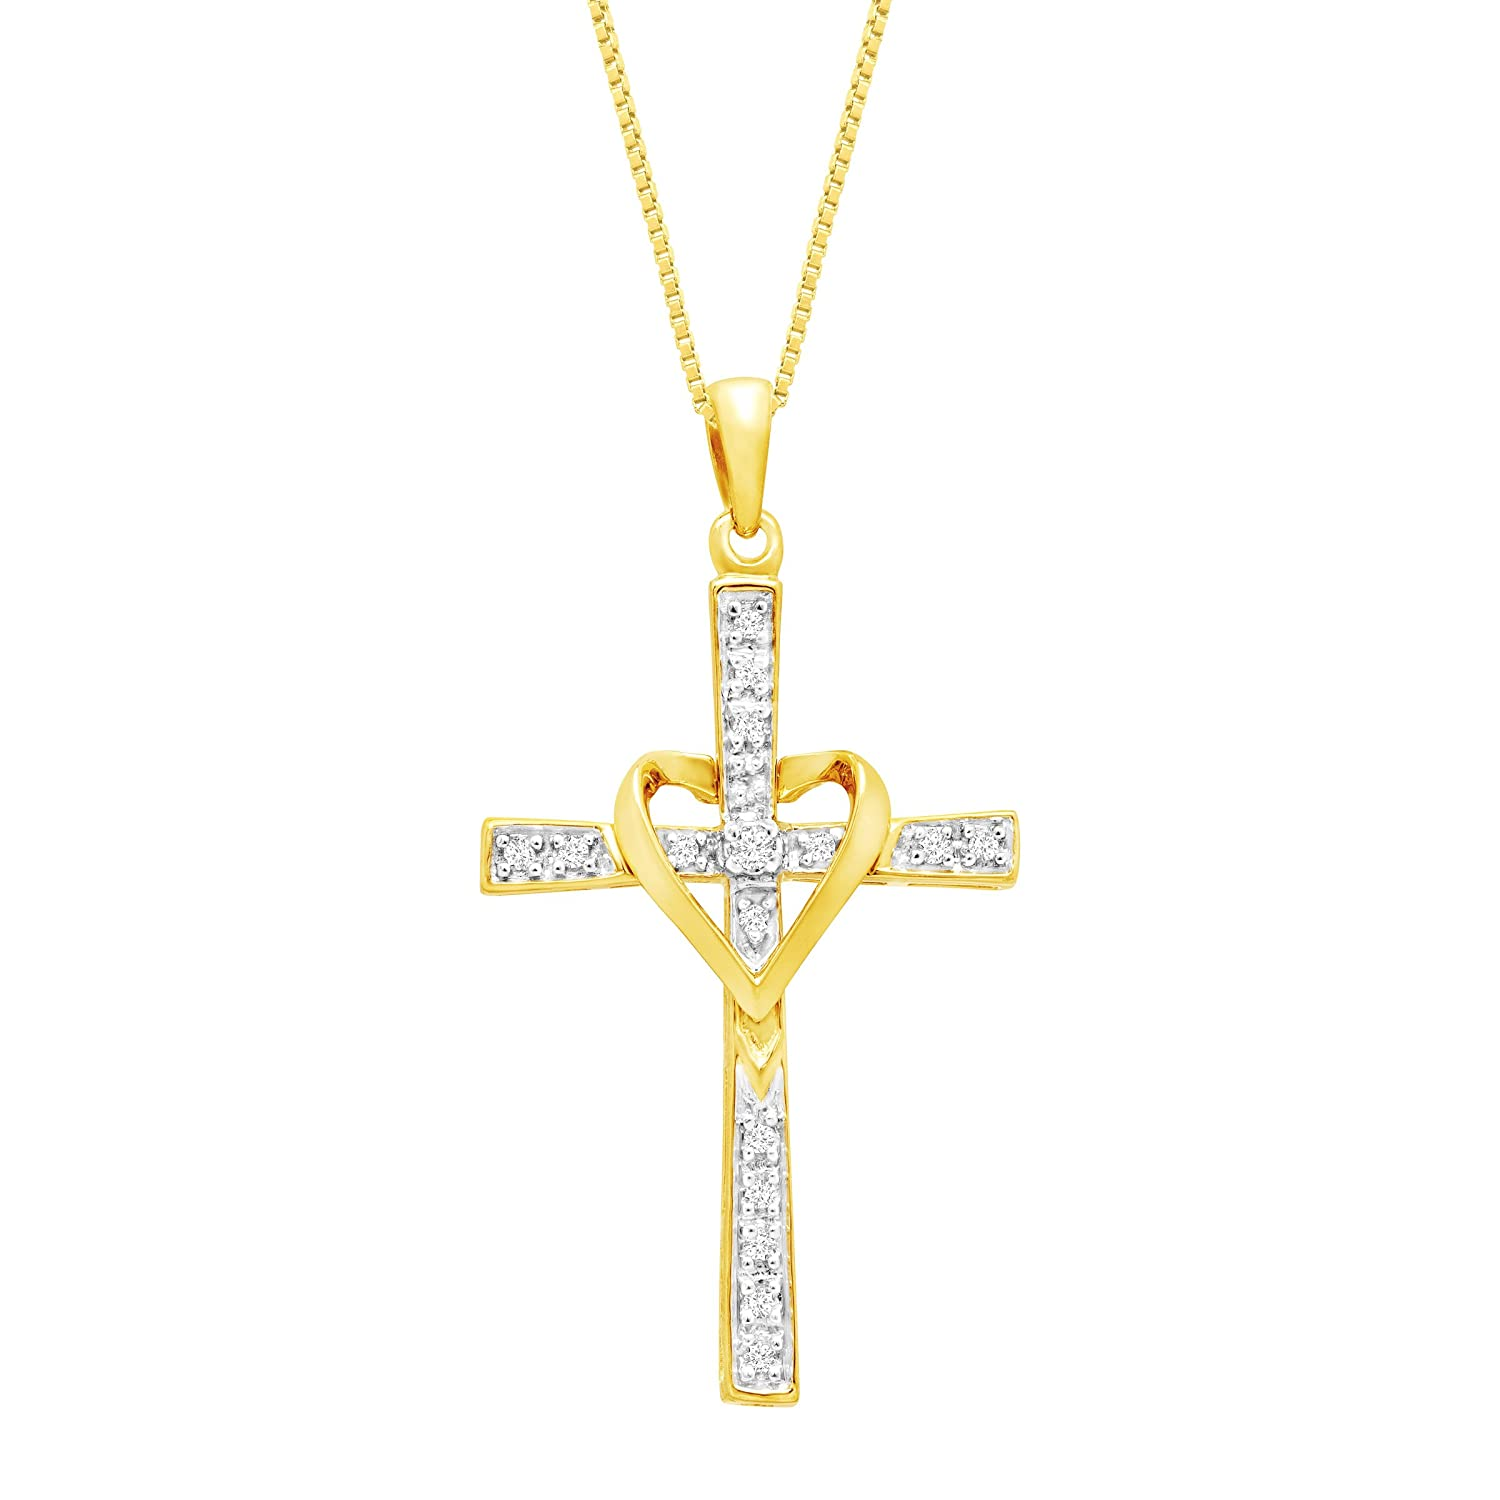 1/10 ct Diamond Cross Pendant Necklace with Heart in 14K Gold